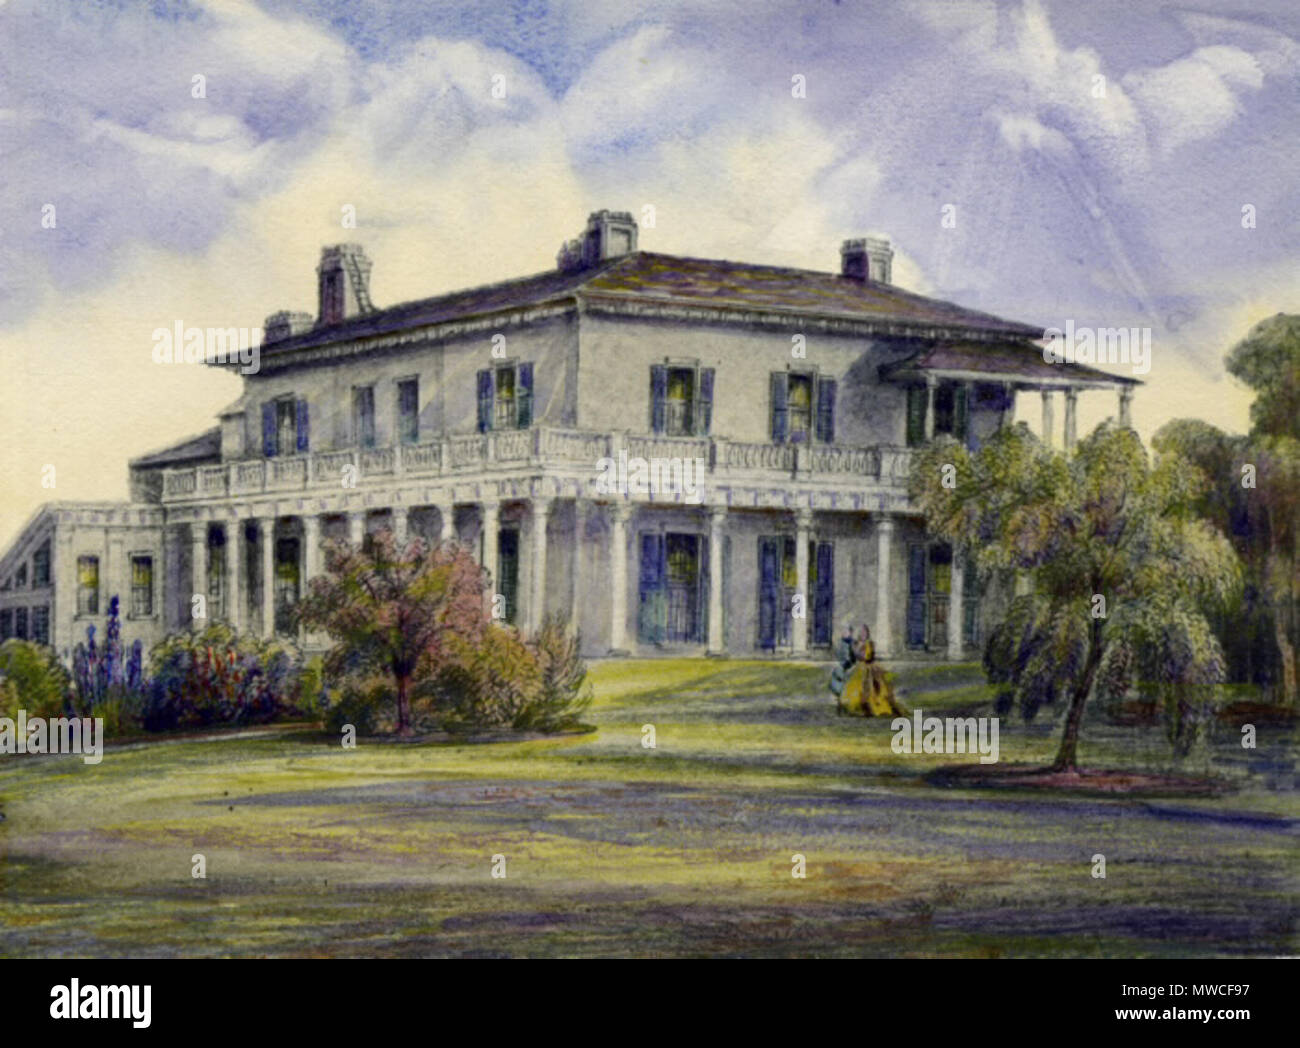 . English: Elmsley Villa, circa 1840, on the corner of Bay and Grosvenor Streets, Toronto. Built by The Hon. John Elmsley (1762-1805). At the time this painting was drawn, the house was lived in by the family of his son-in-law, The Hon. John Simcoe Macaulay (1791-1855), from 1835 to 1845. The house was afterwards occupied by the 8th Earl of Elgin, and frequently served as the residence to Governors of Upper Canada. Unknown date. Unknown 184 Elmsley Villa, Toronto Stock Photo